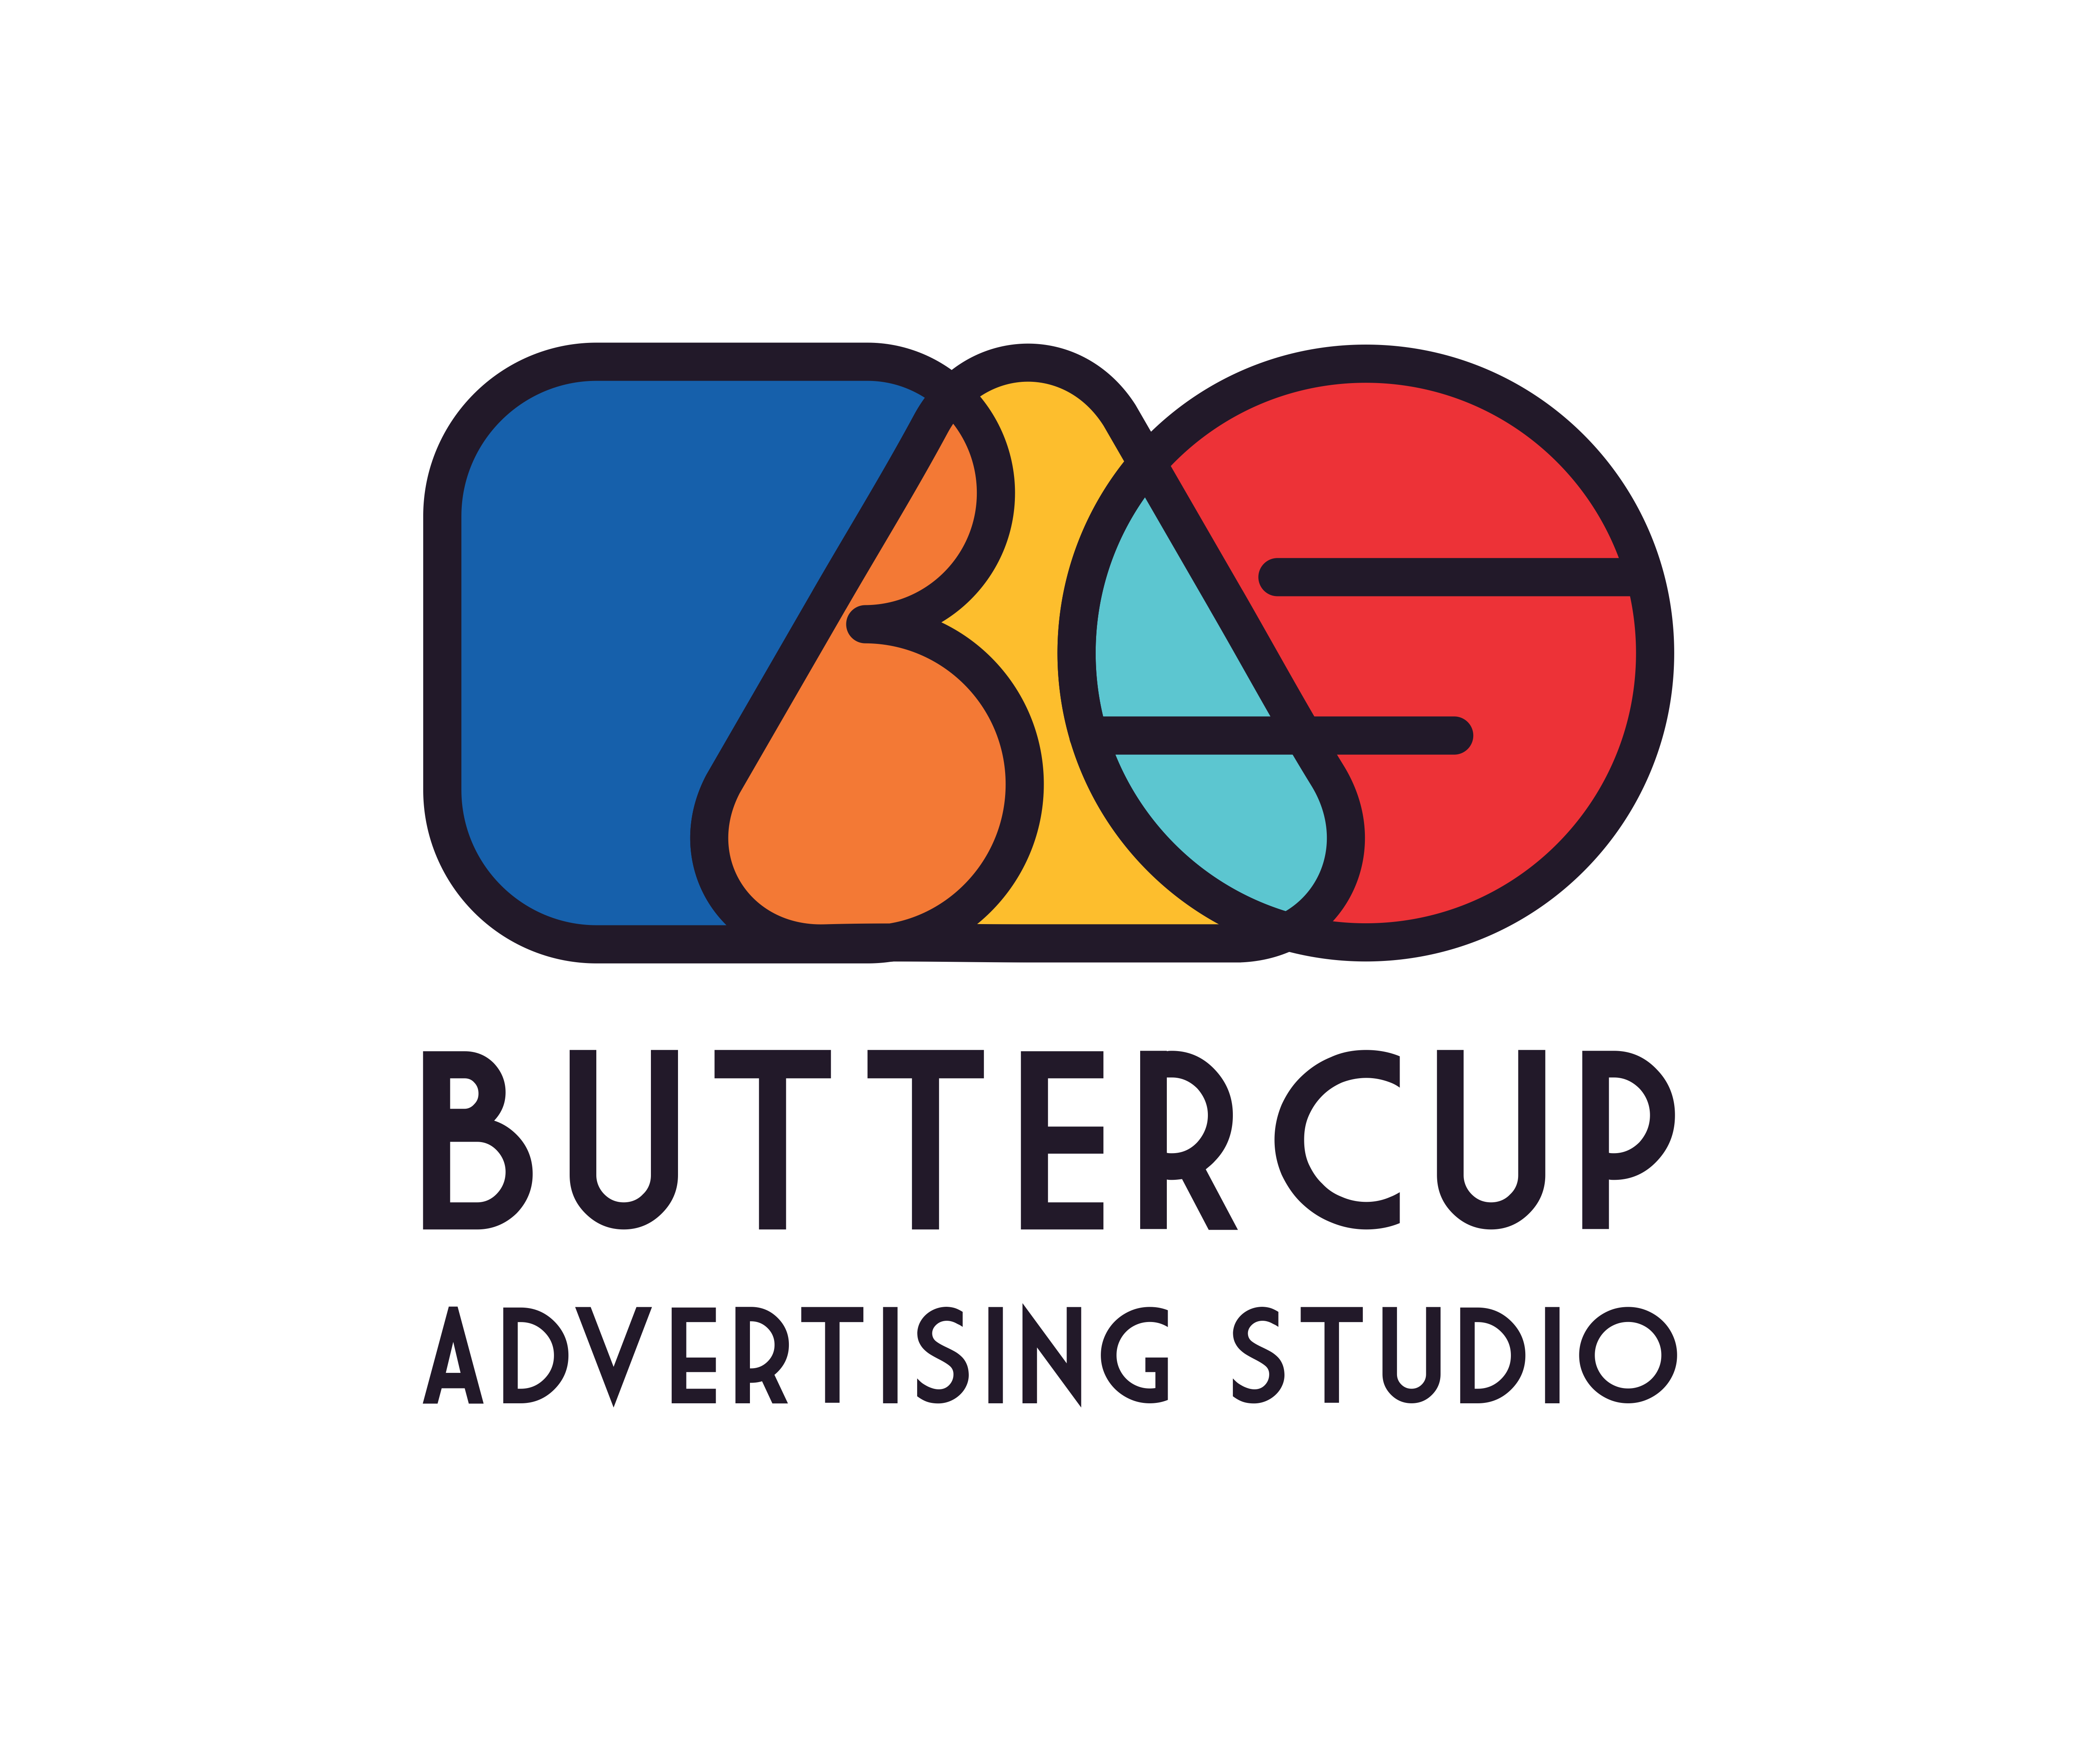 Buttercup advertising studio - graphic designing